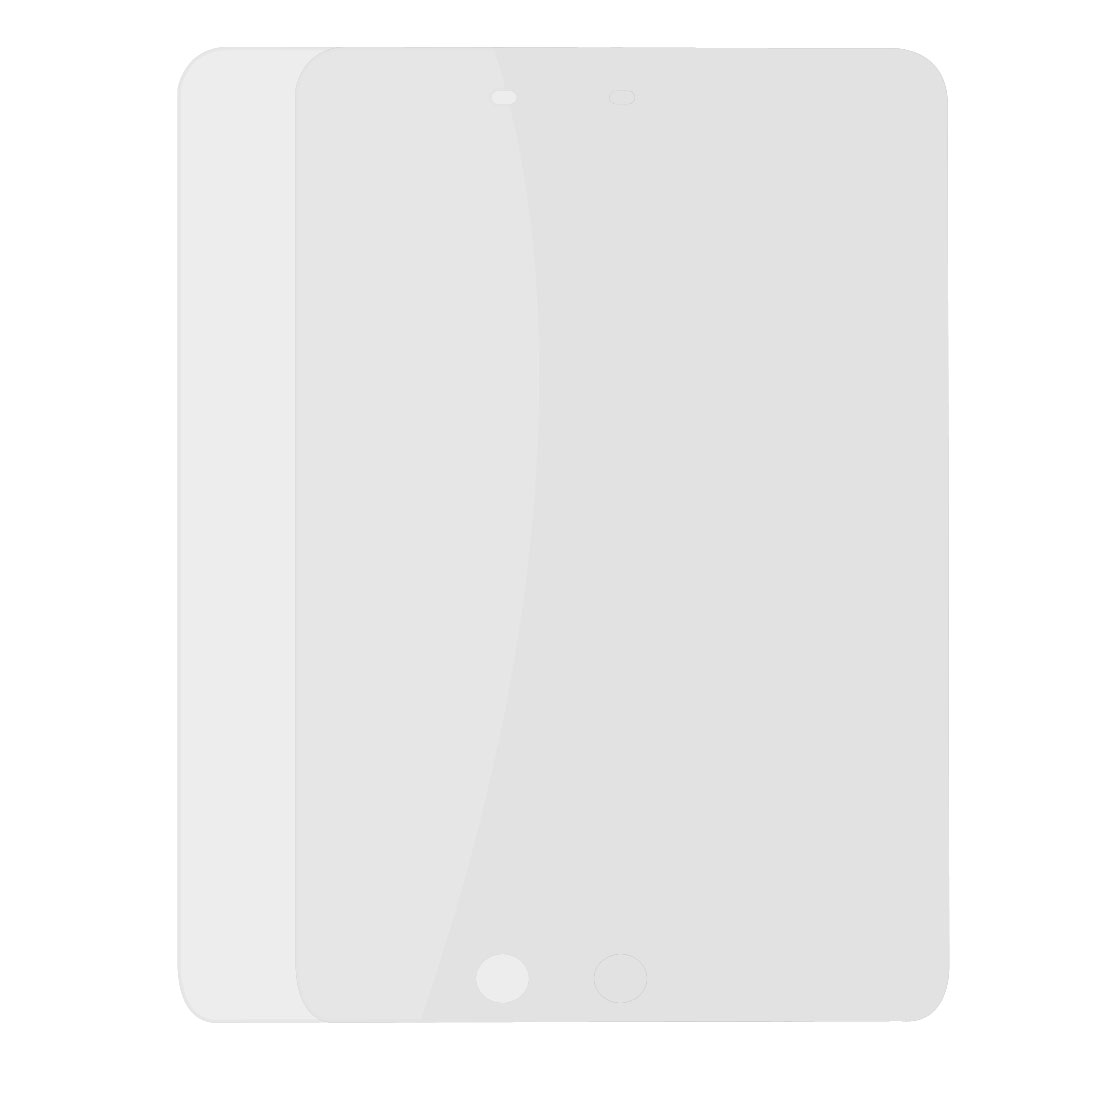 3 Pcs Anti Glare Clear Front Screen Protector Guard Film for iPad Mini